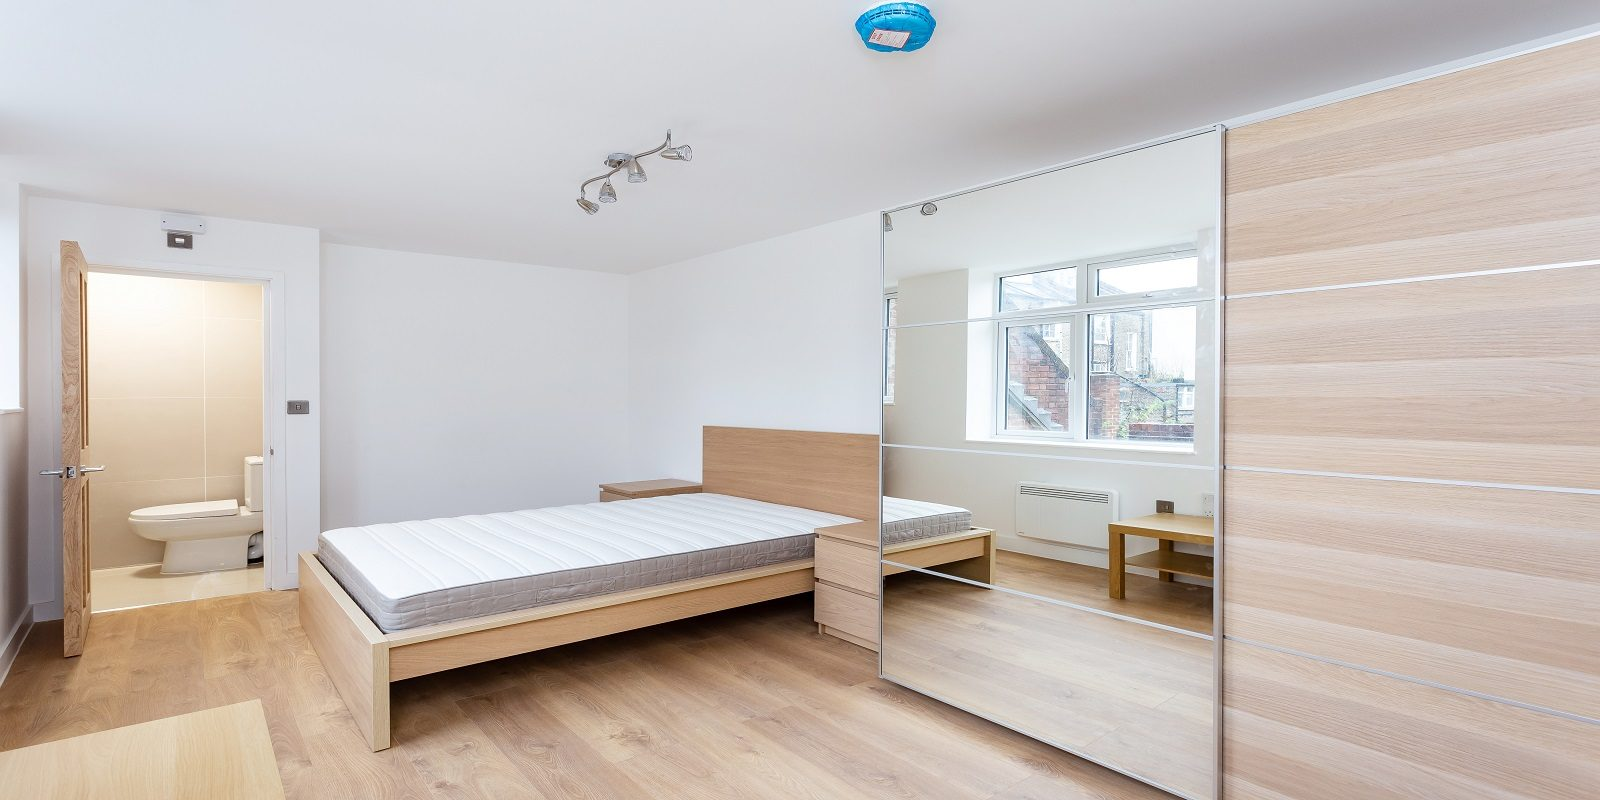 NEWLY CONVERTED, TWO DOUBLE BEDROOM APARTMENT TO LET – MUST BE SEEN!